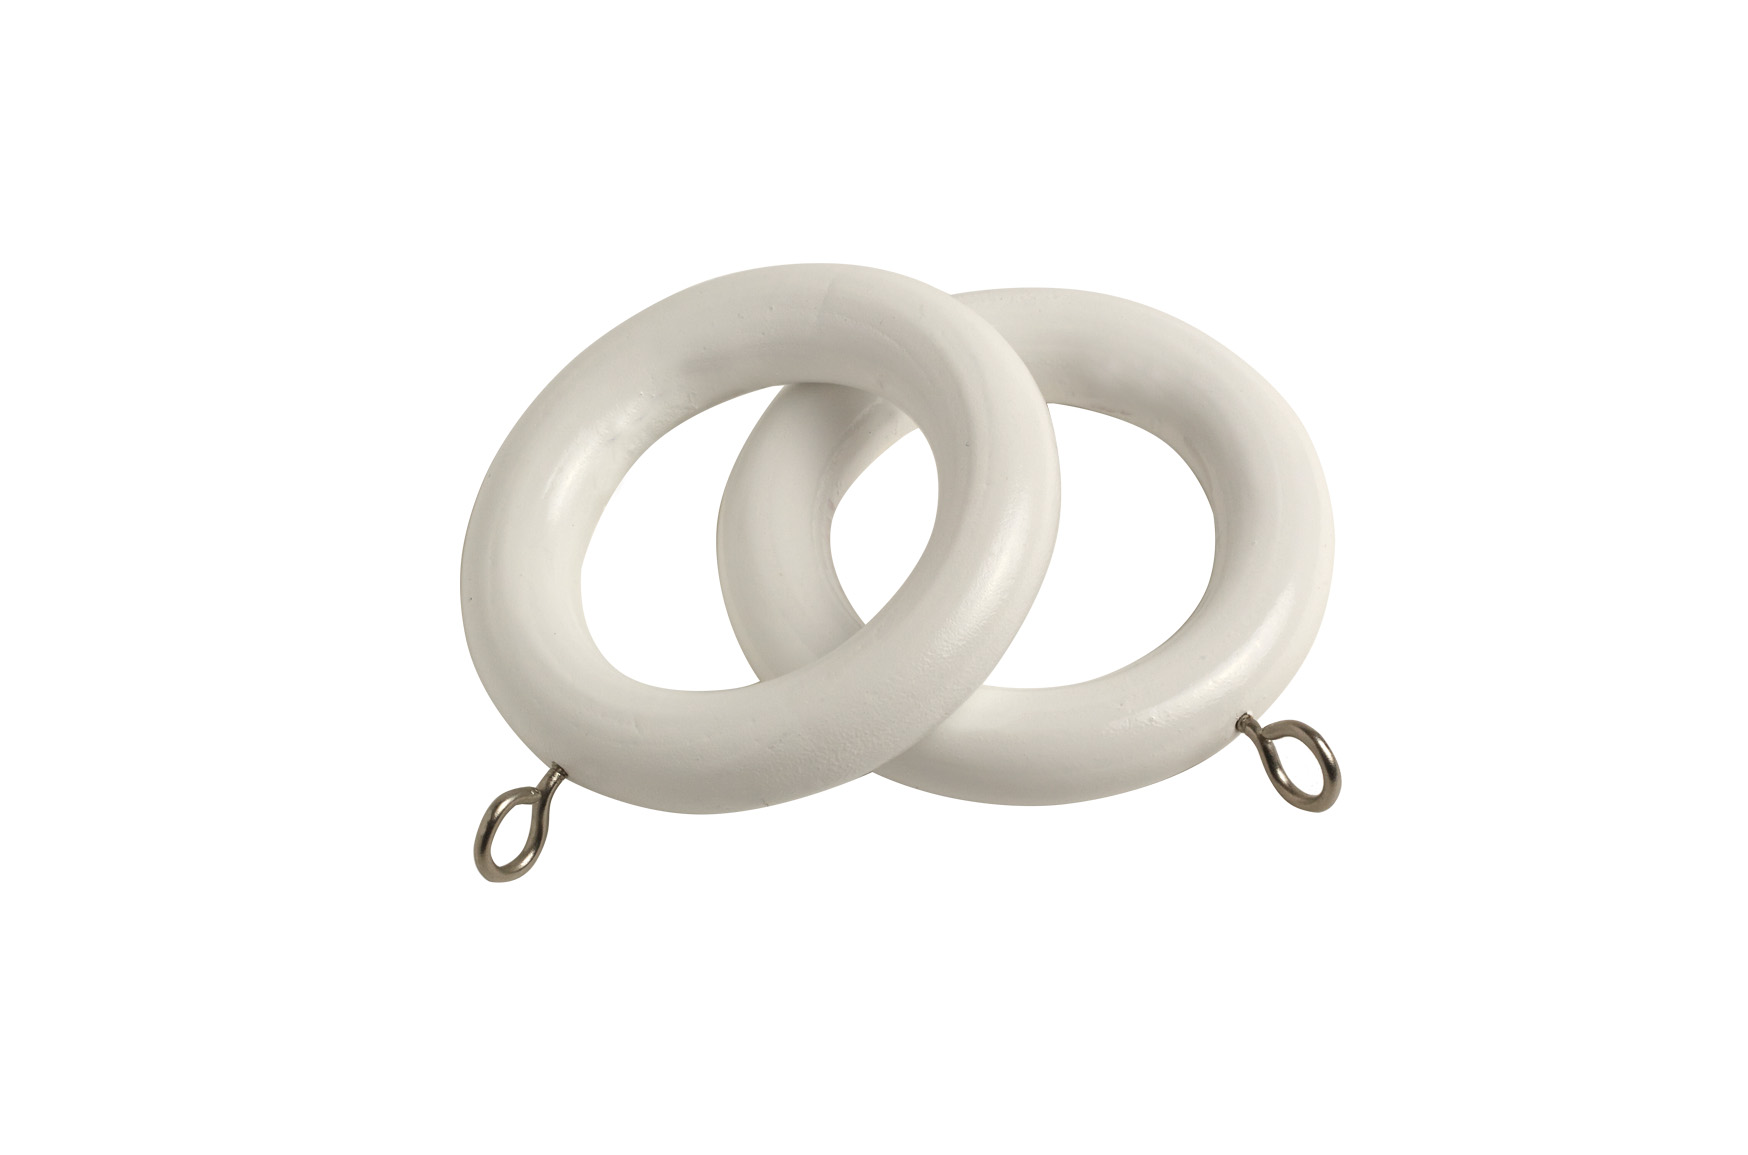 County 28mm Wooden Curtain Rings White - 4 Pack